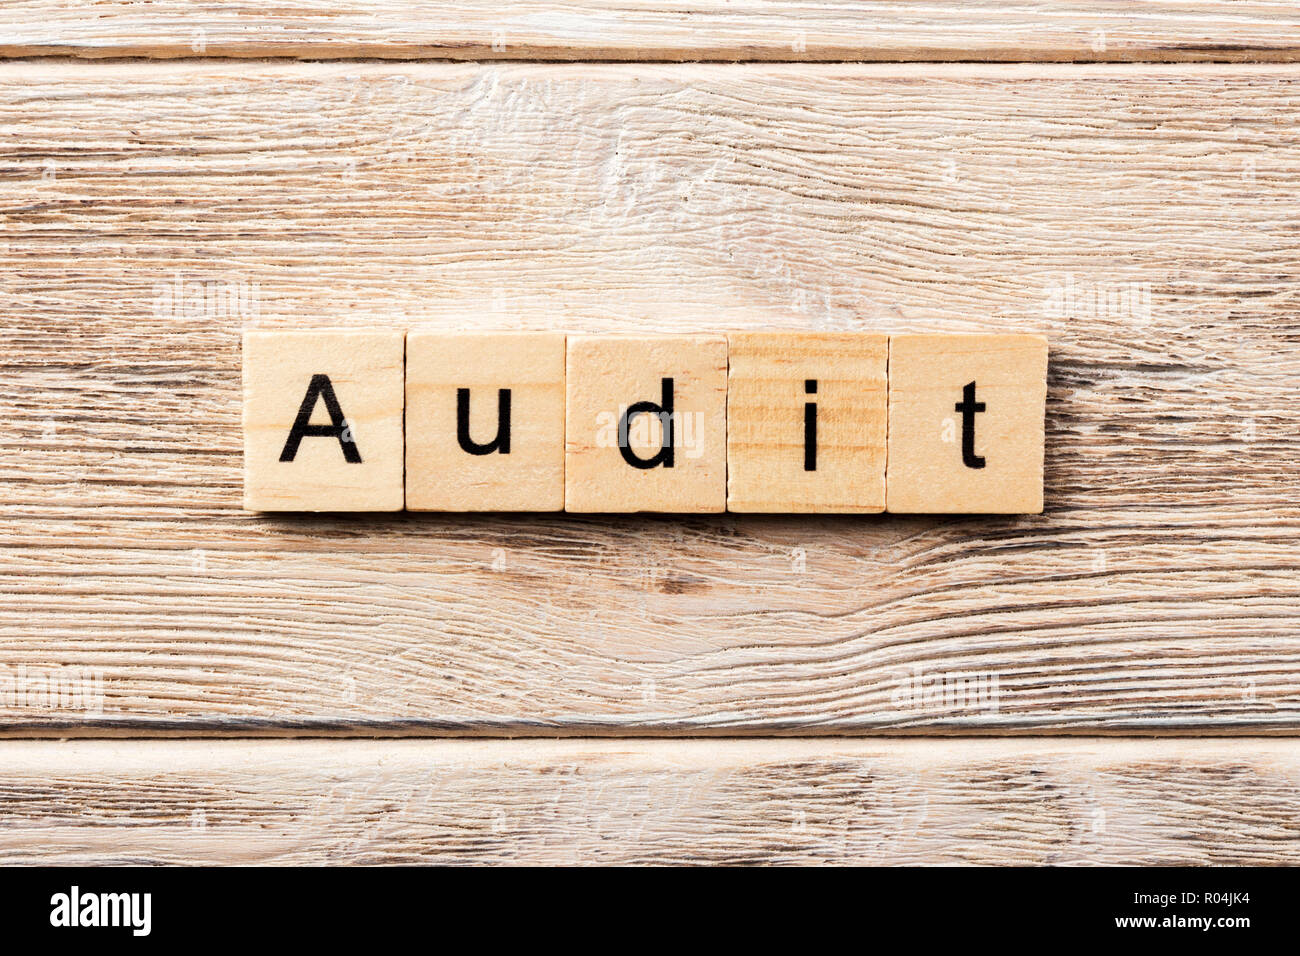 audit word written on wood block. audit text on table, concept. - Stock Image